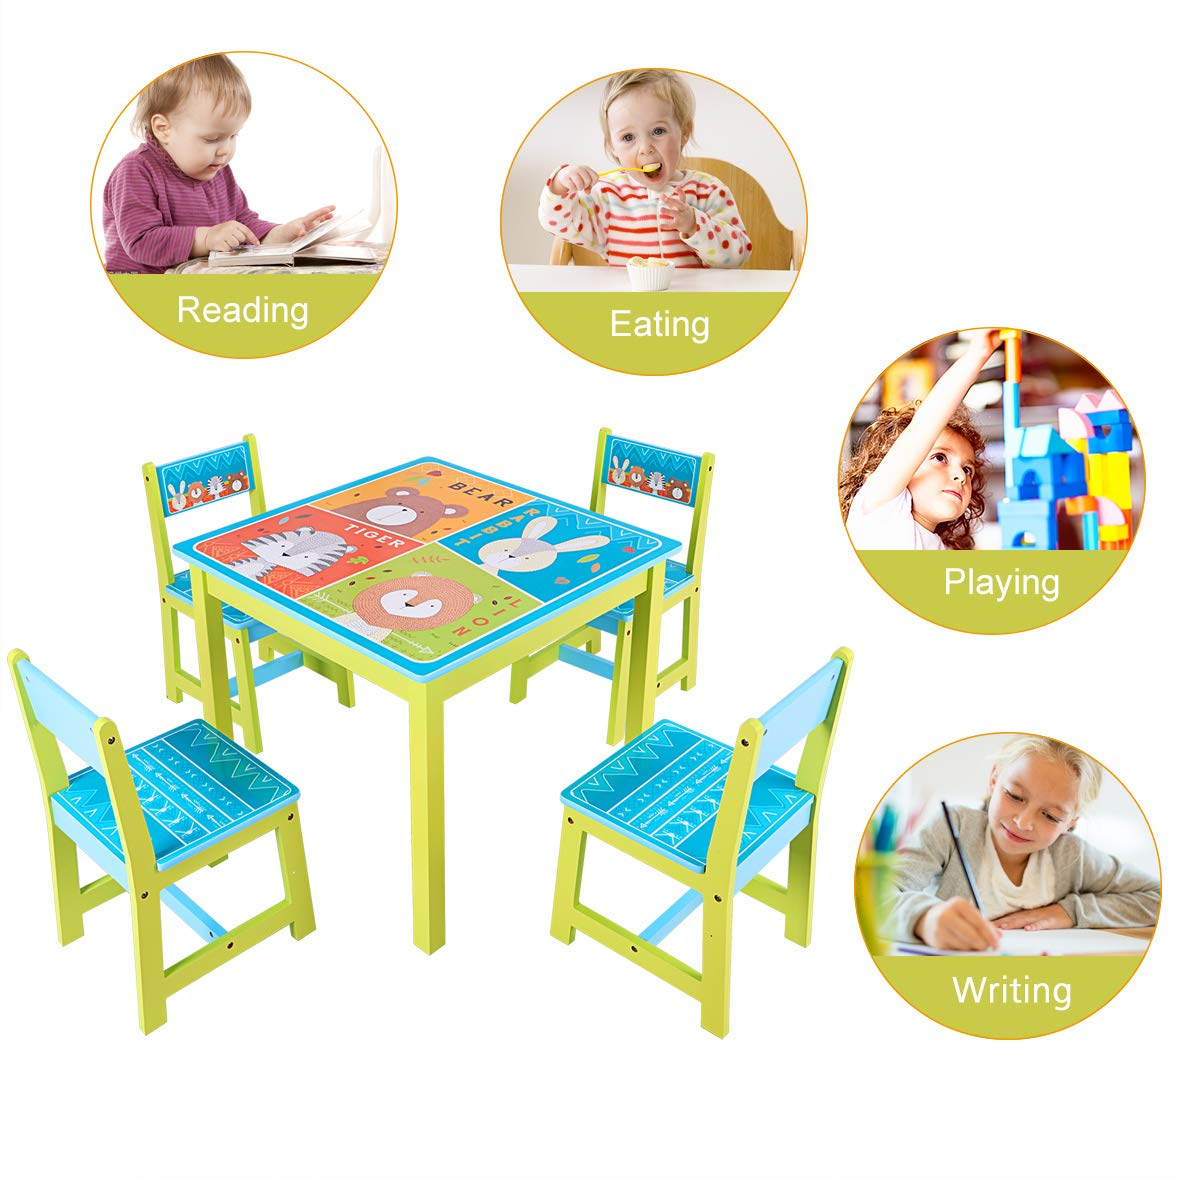 BABY JOY Kids Table and 4 Chairs Set, Wooden MDF Desk for Studying Playing Dining Indoors & Outdoors Activity, Toddler Baby Gift Desk Furniture Cartoon Pattern (Table and 4 Chairs) by BABY JOY (Image #3)